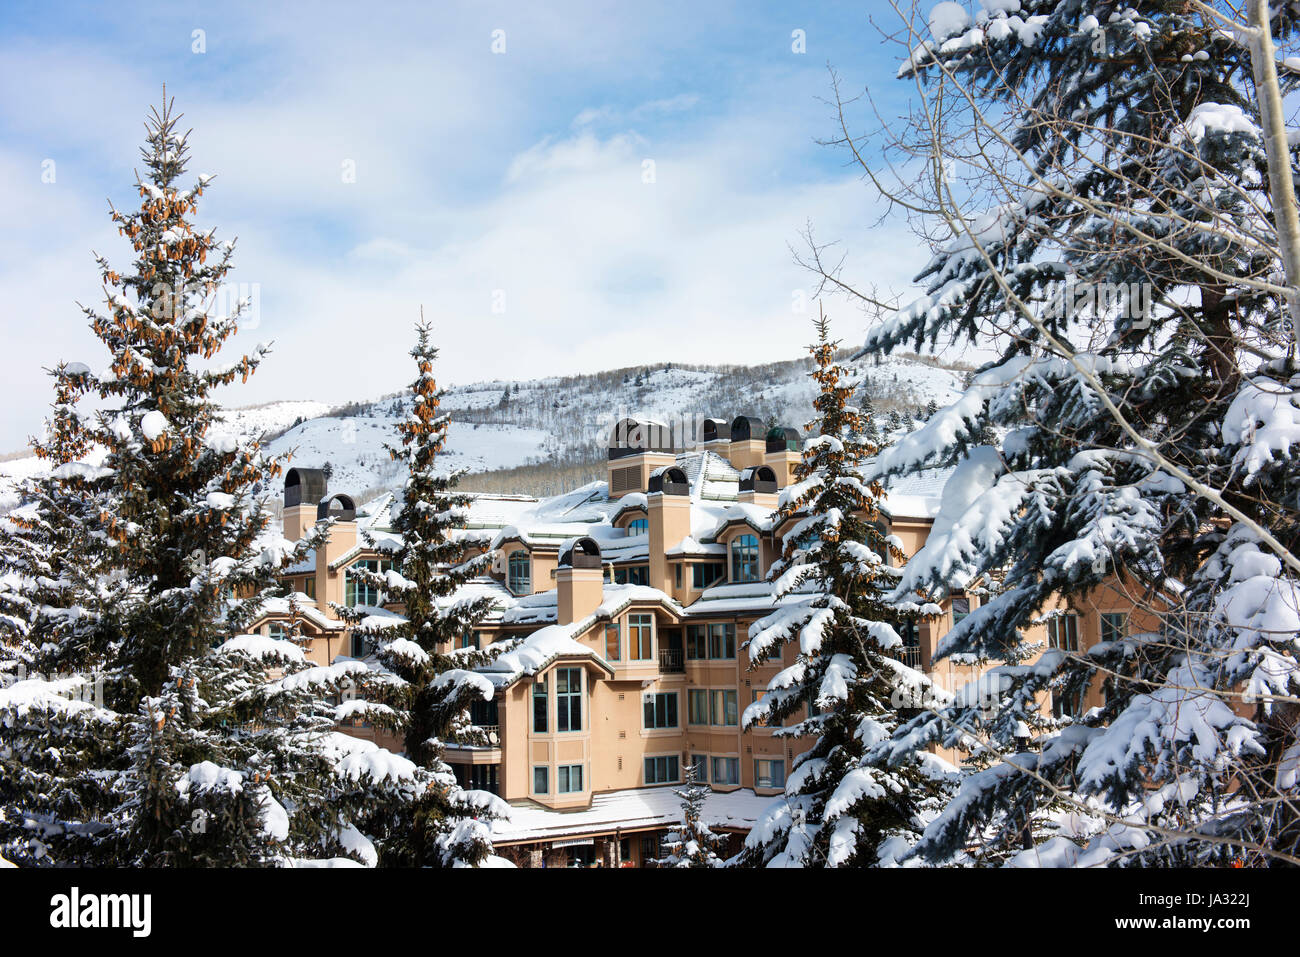 Holiday apartments at Beaver Creek, a ski resort near Avon, Colorado. - Stock Image